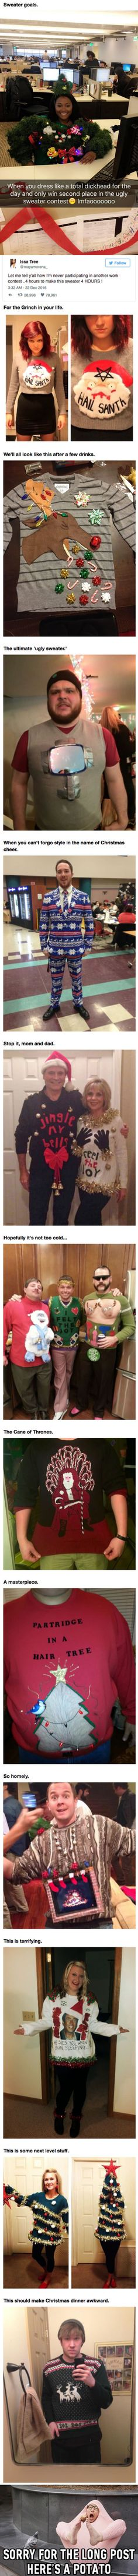 13 People Who Took Ugly Christmas Sweaters To The Next Level